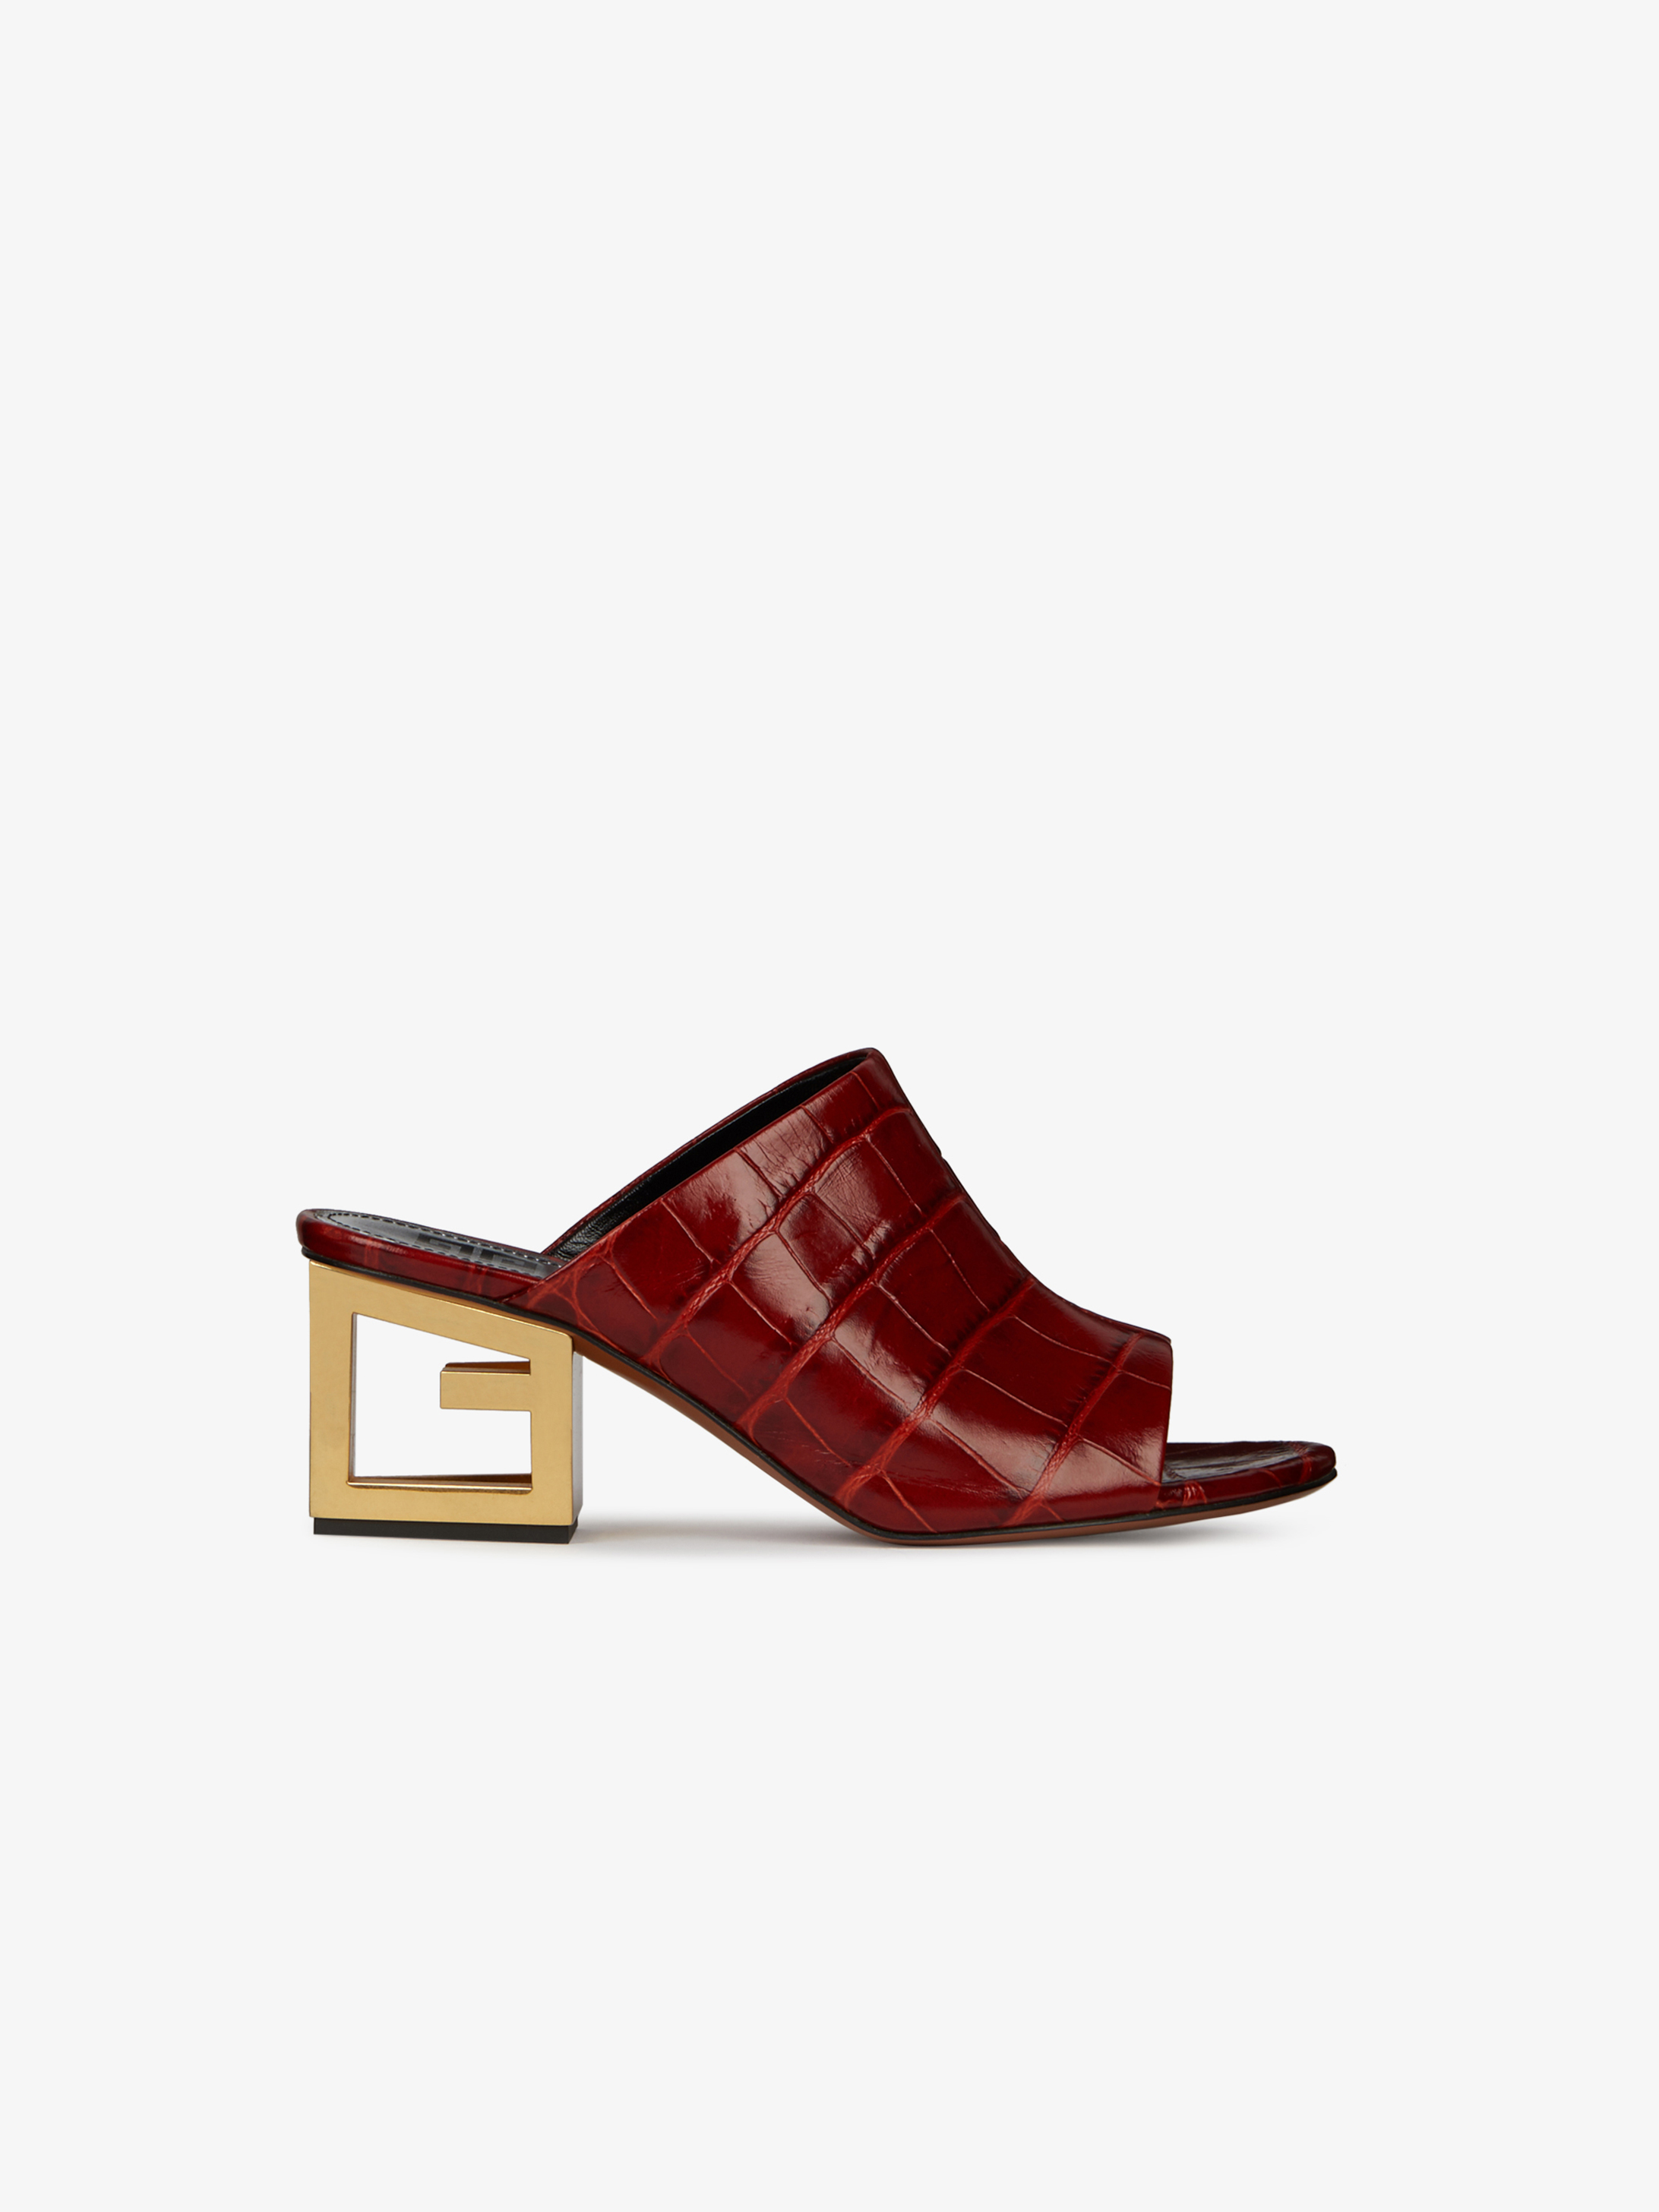 Mules in crocodile-effect leather with triangular G heel